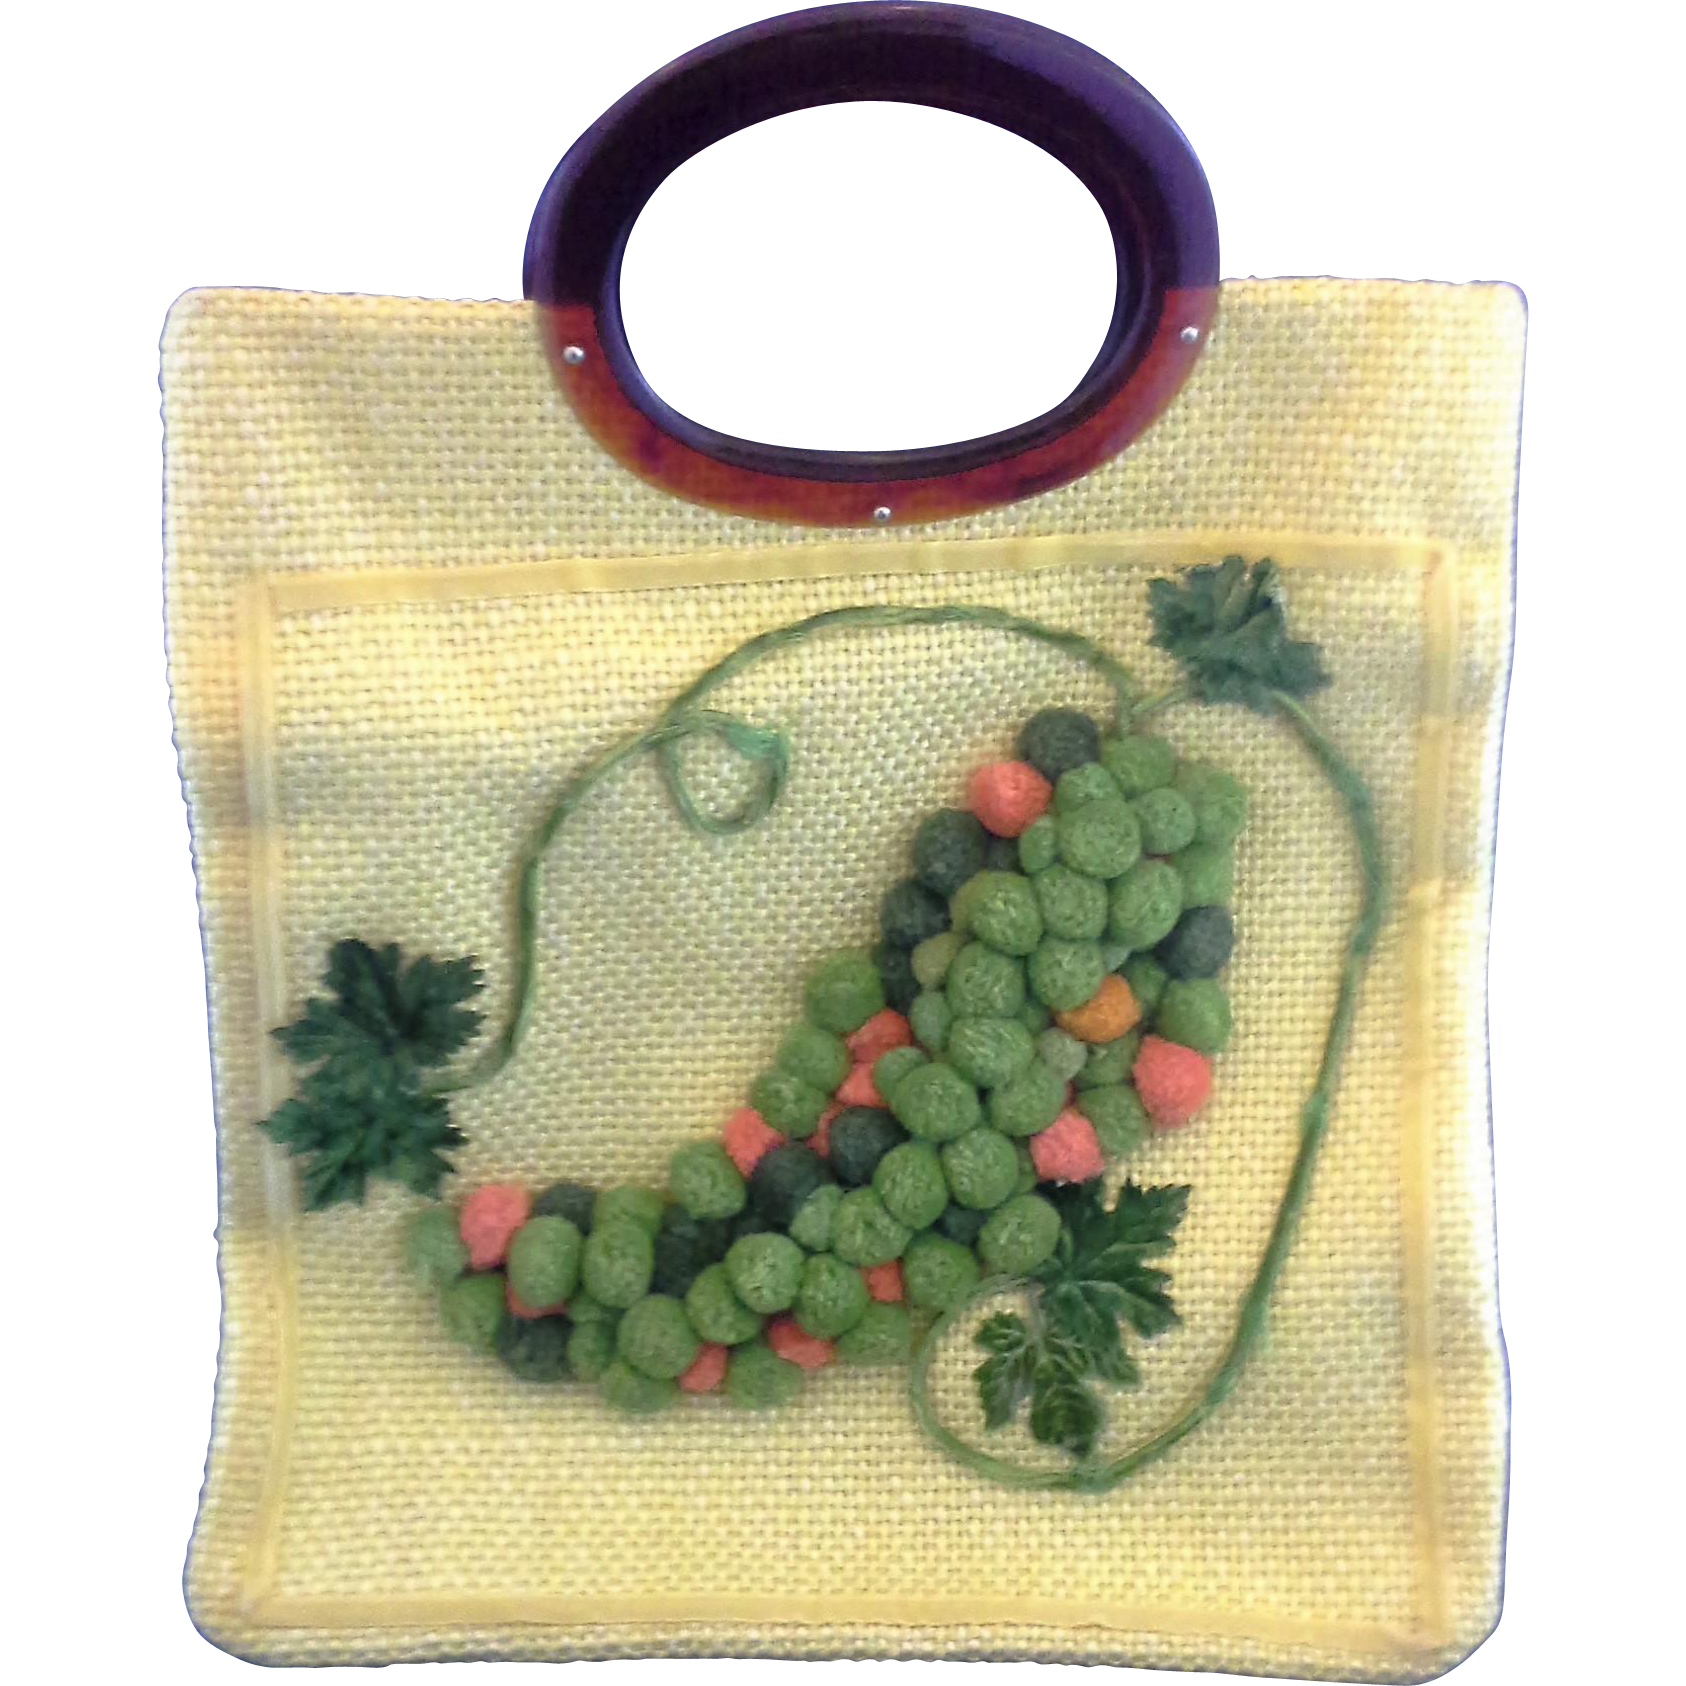 JR Julian Resnick Yellow Burlap Chenille Grapes Root Beer Lucite Handle Purse Handbag